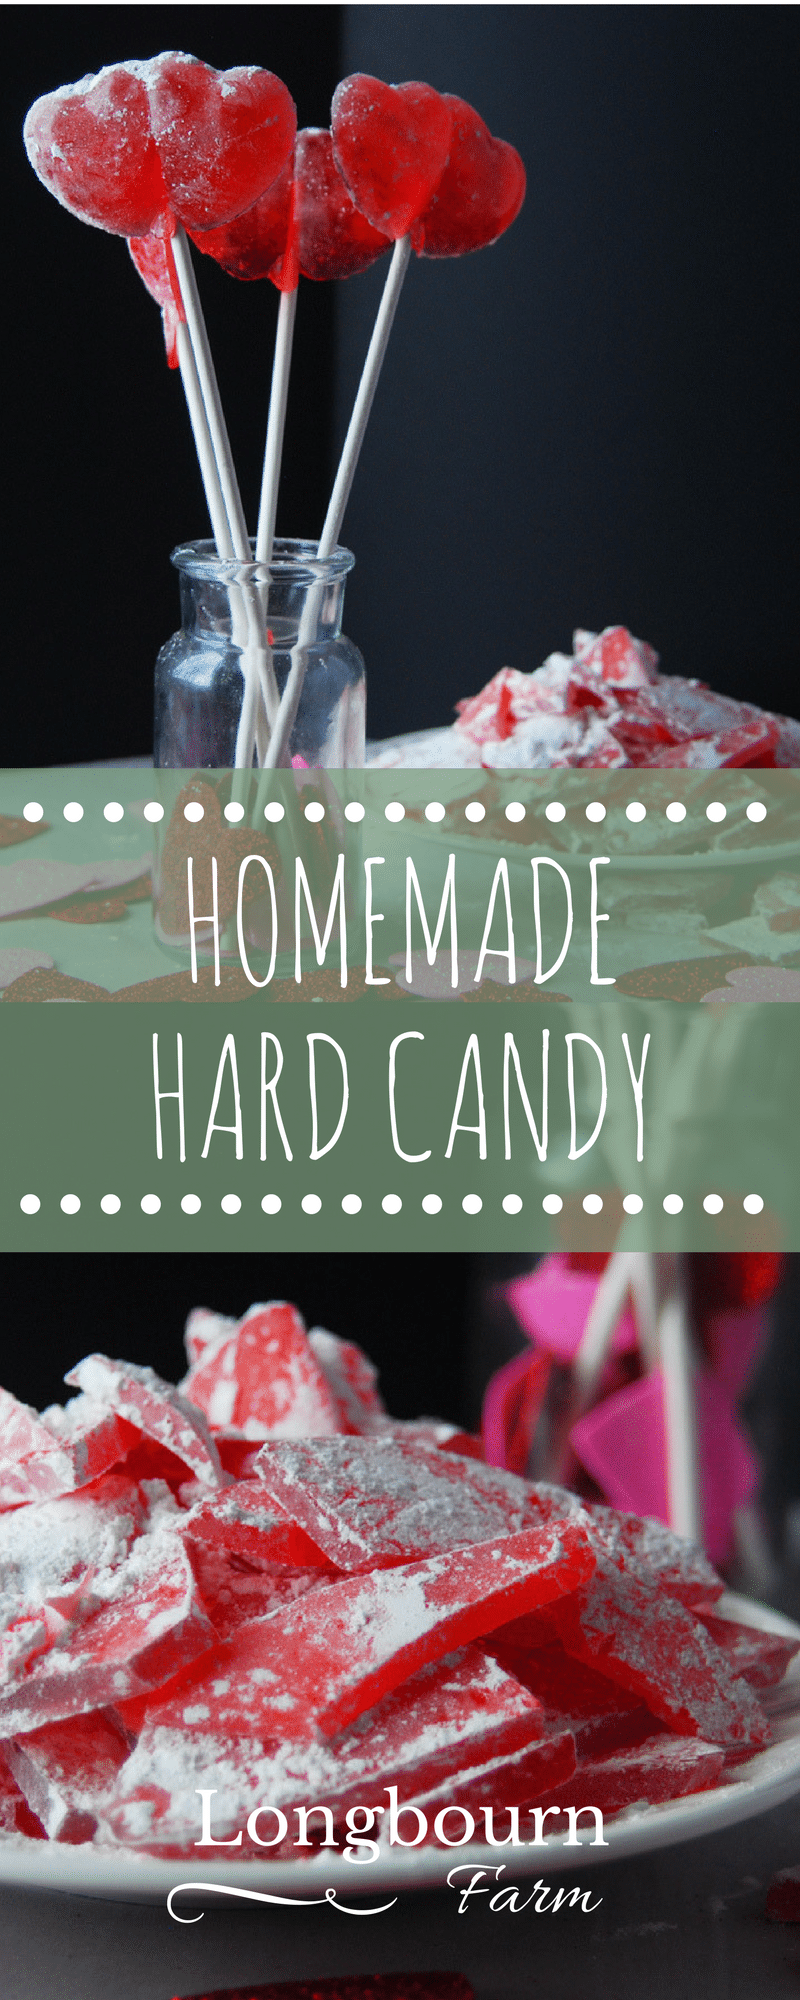 Homemade hard candy isn't hard to make! Follow this easy hard candy recipe and the step-by-step instructions. Changing the flavor is simple and delicious!